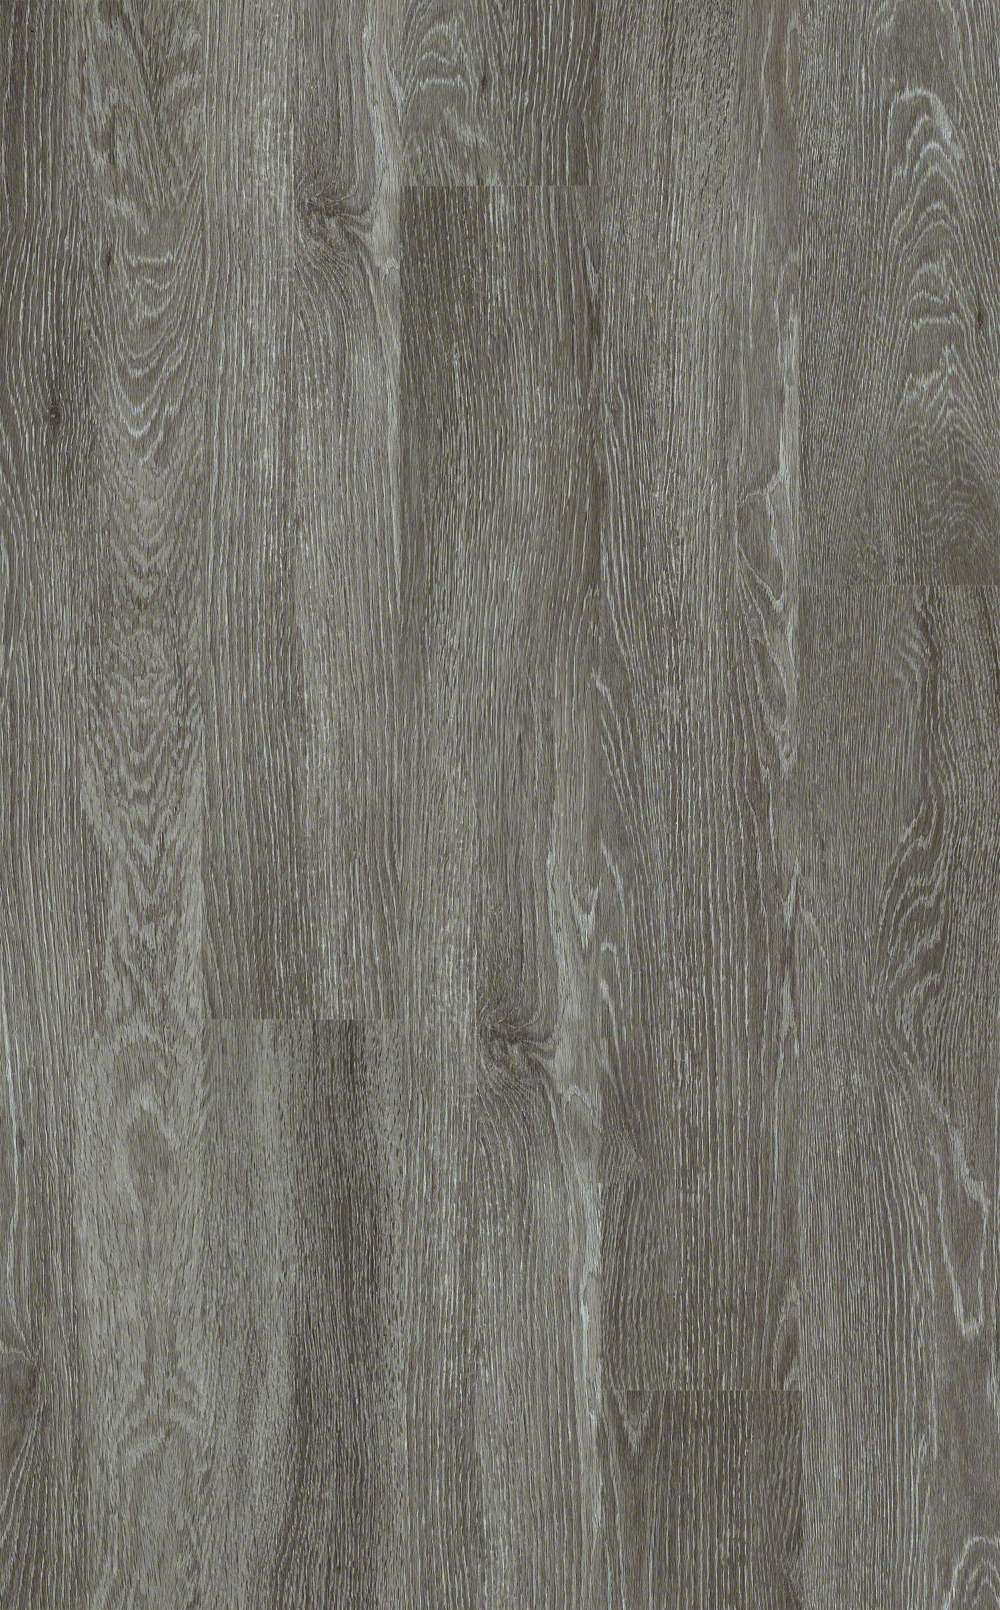 "Shaw - Pola  Width: 5.90""  Length: 48.03""  Thickness: 17/64""  Wear Layer: 12 Mil."